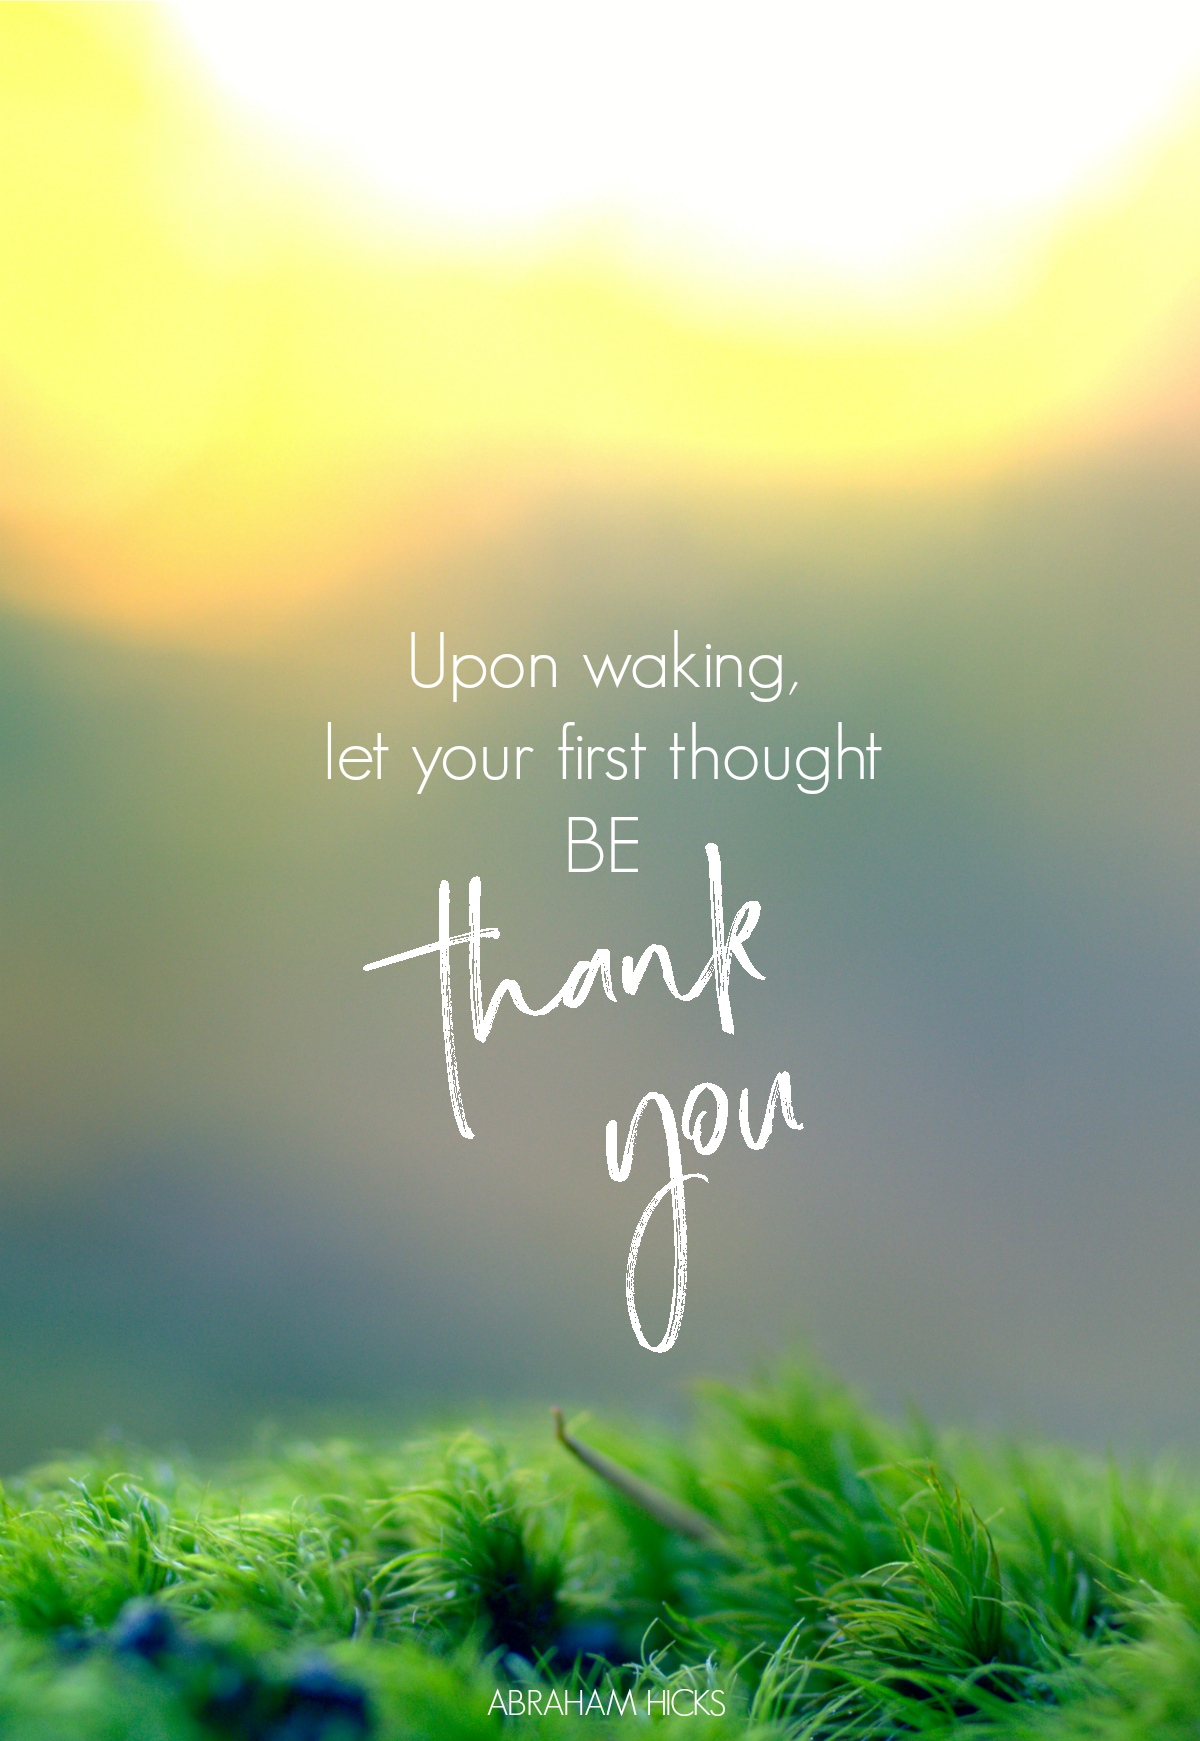 Upon waking, let your first thought be thank you. Abraham Hicks. Circle of Daydreams.